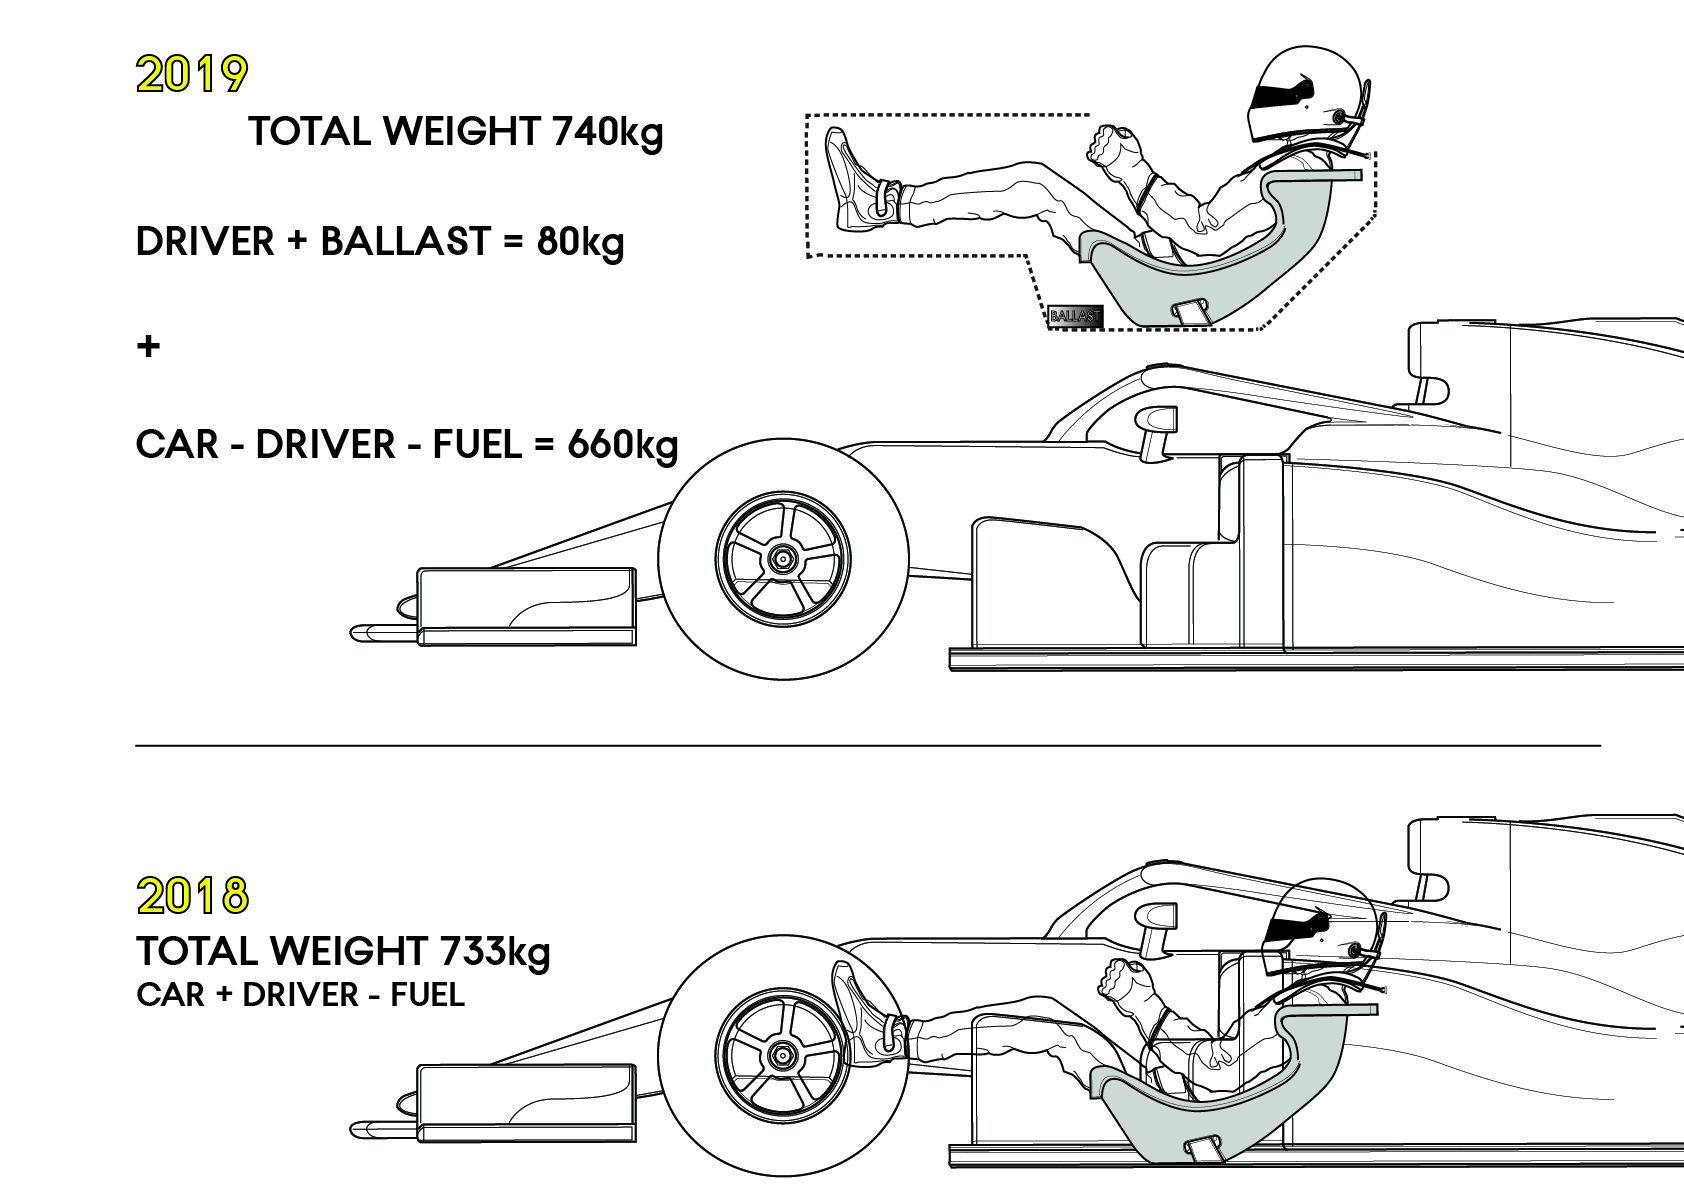 Car and driver weight.